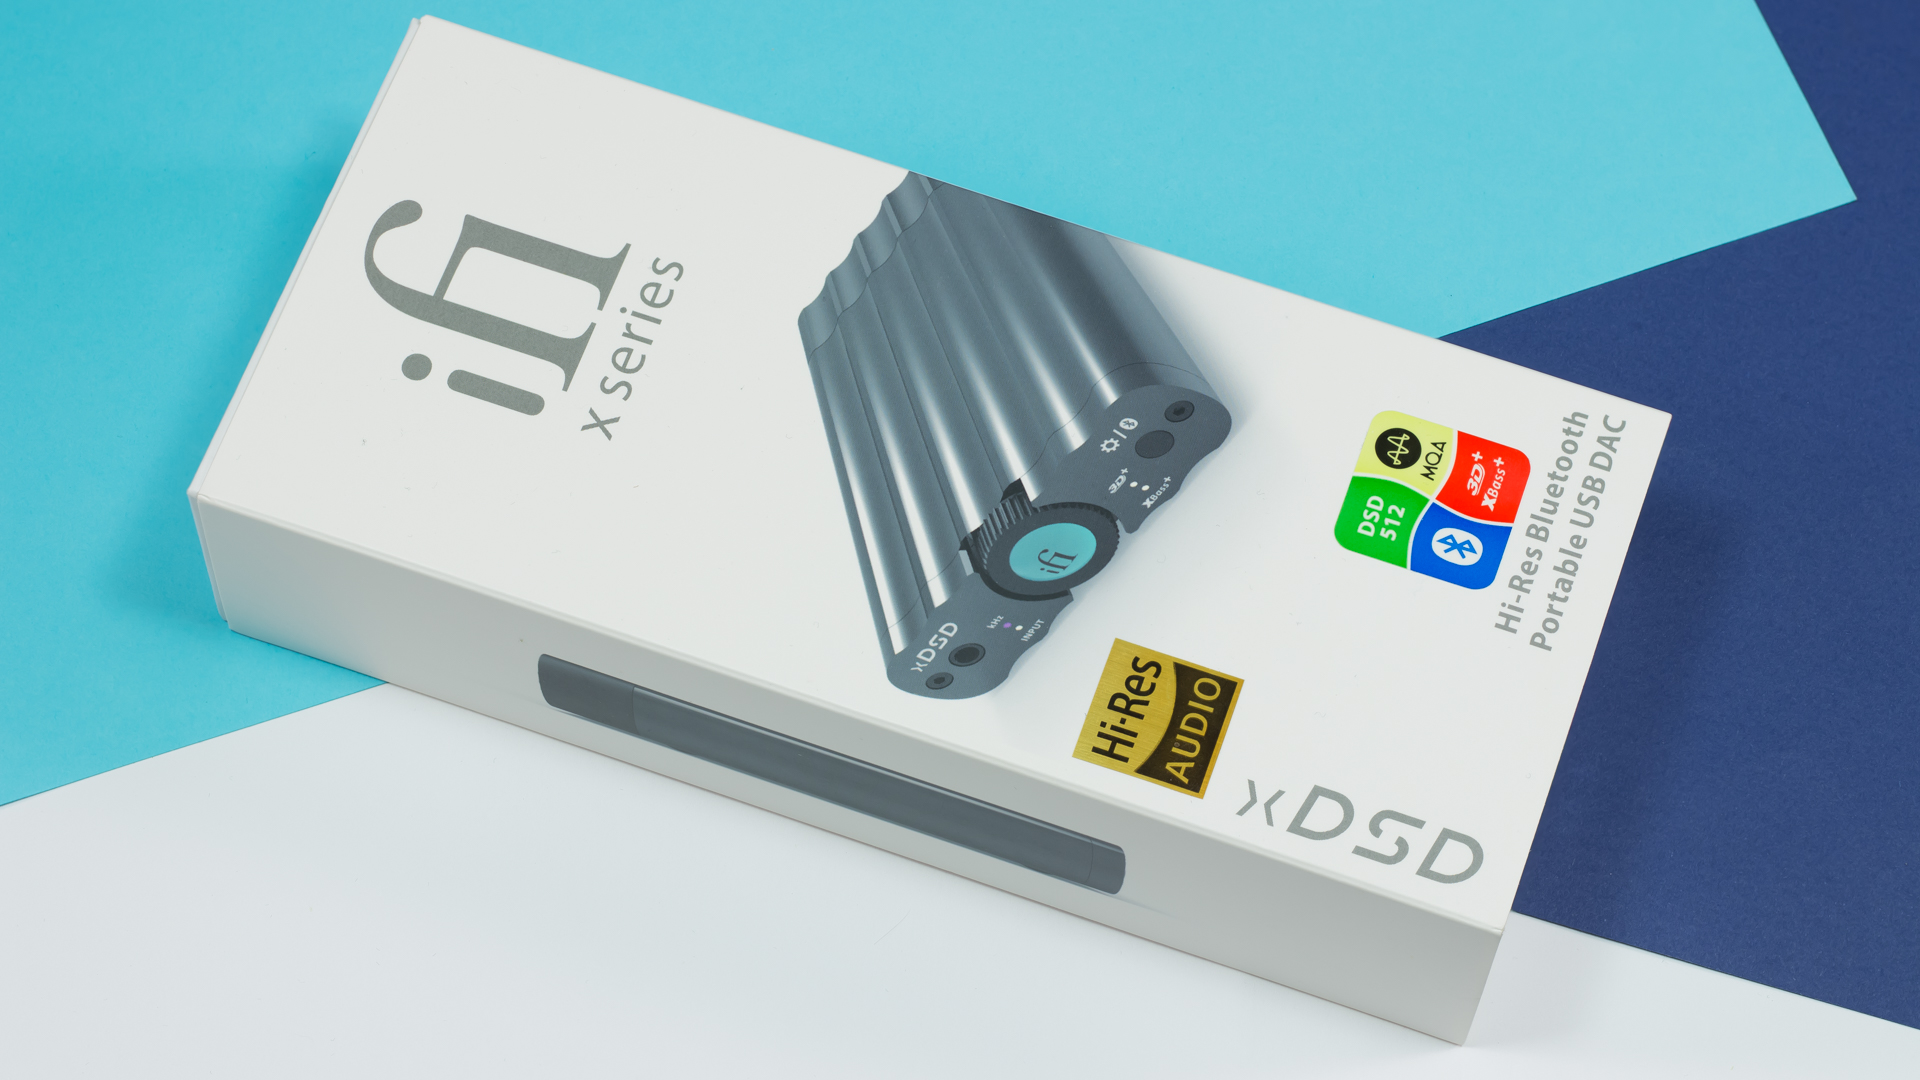 iFi xDSD Quick Review (vs  the LG V30